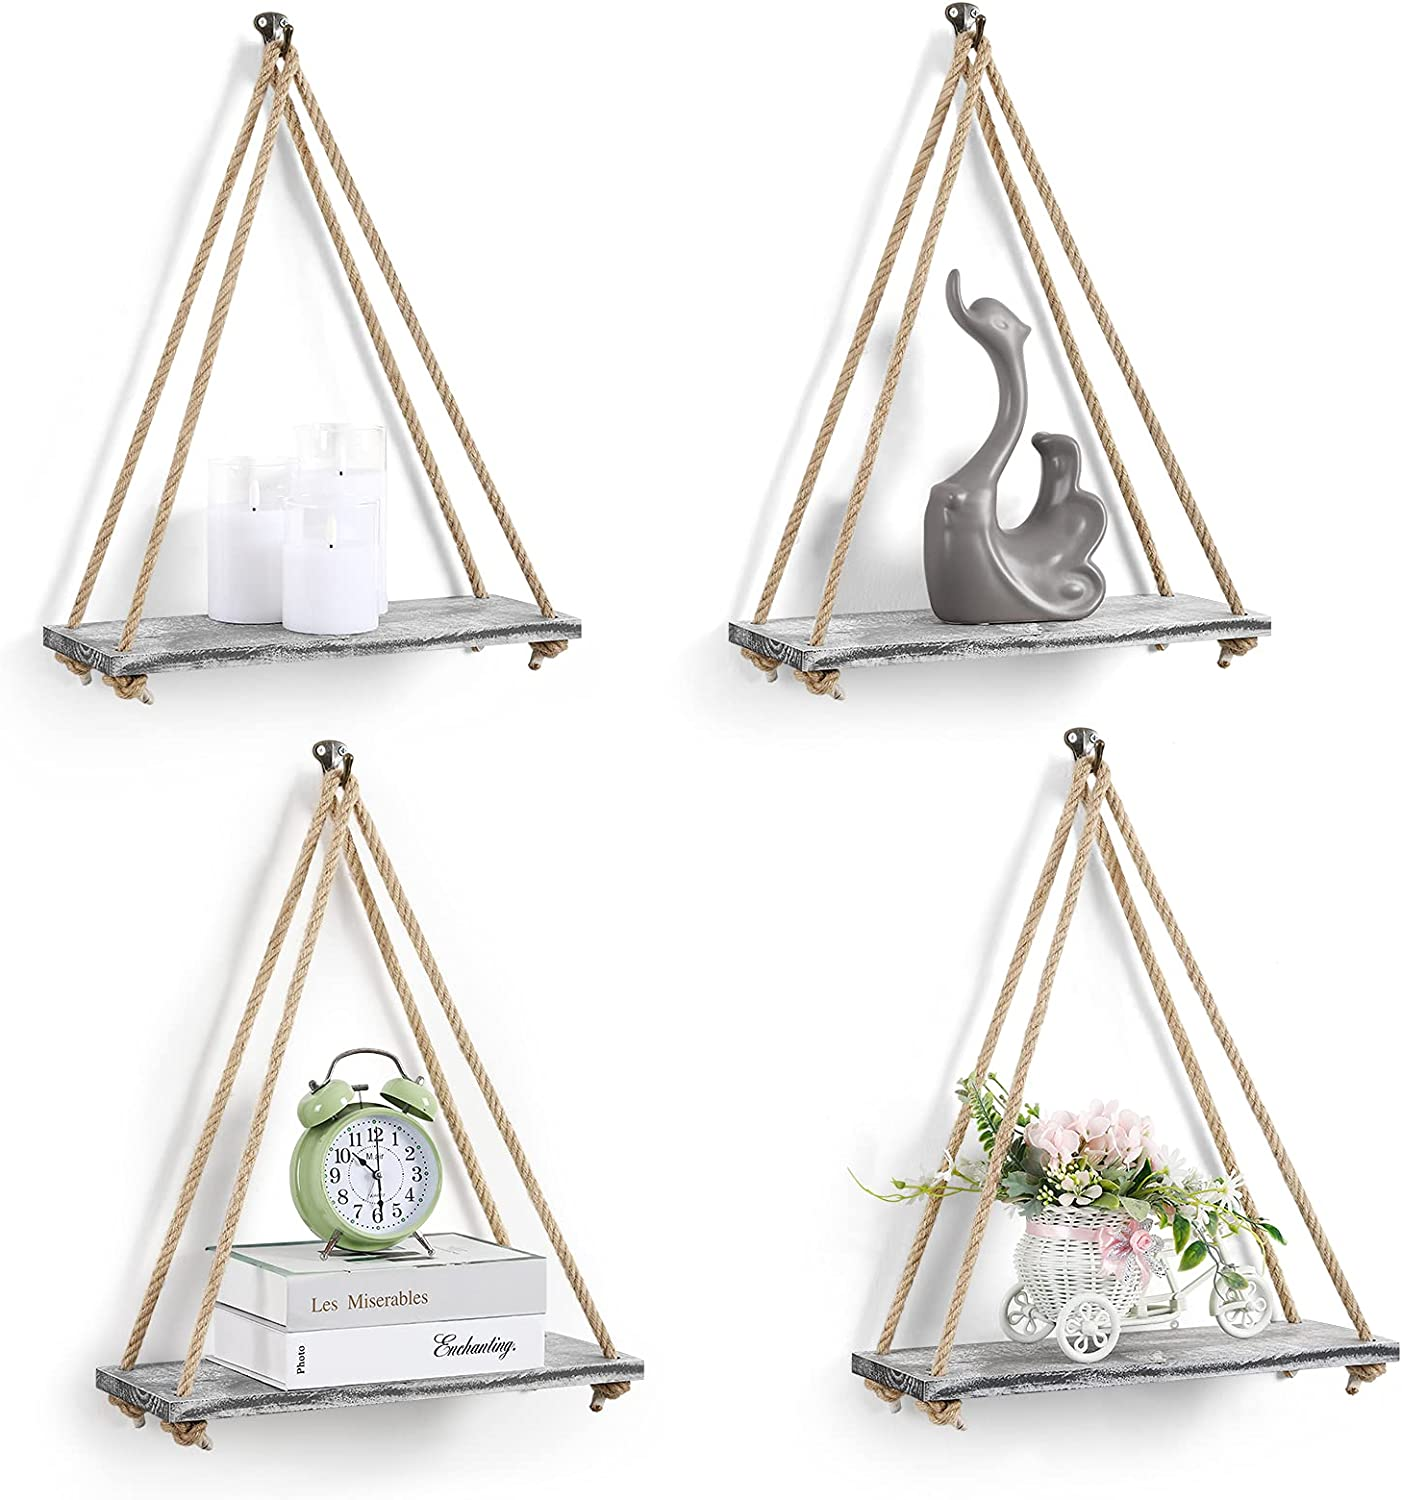 BTY Hanging Plant Shelf Set of Wood Easy-to-use 4 for Shelves Wall Ranking TOP13 M